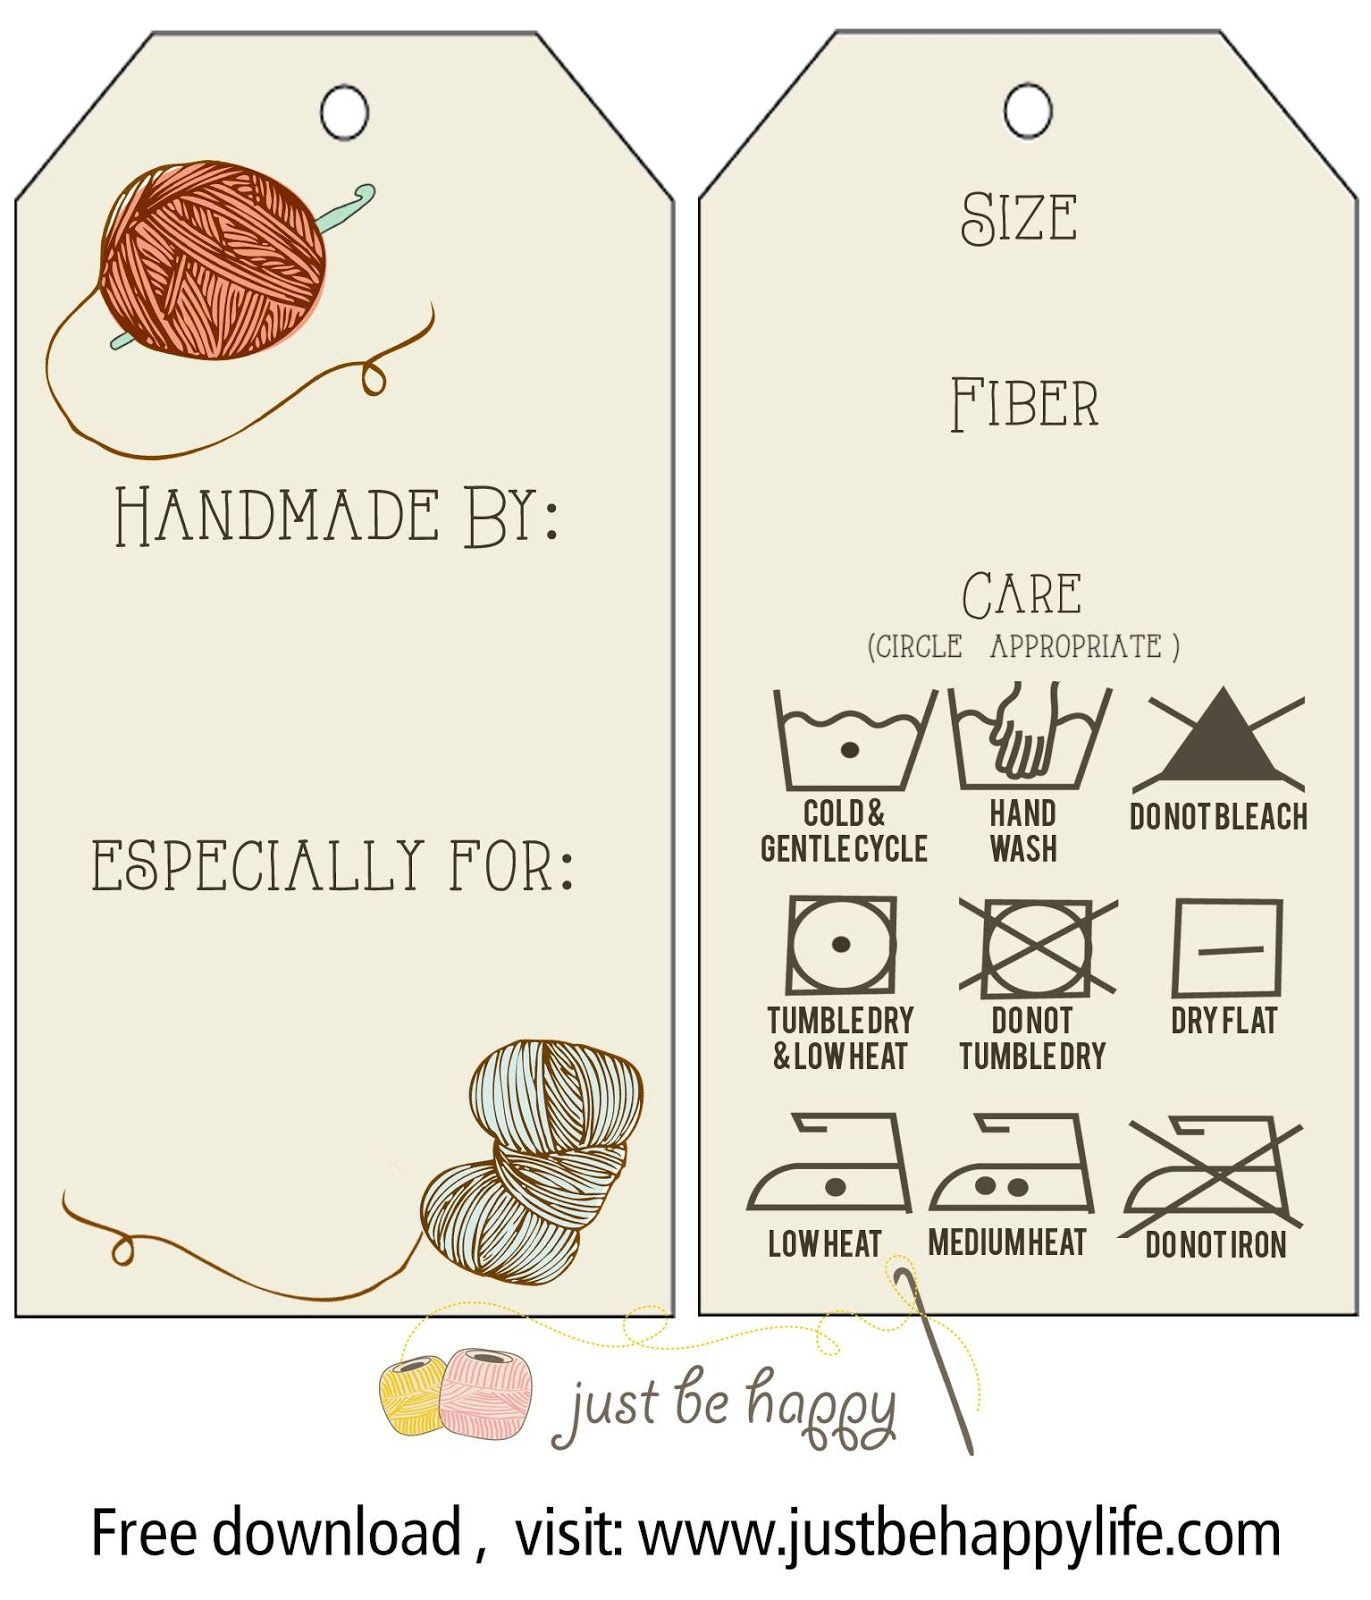 Printable care labels for crochet & knitted gifts from Just be happy ...